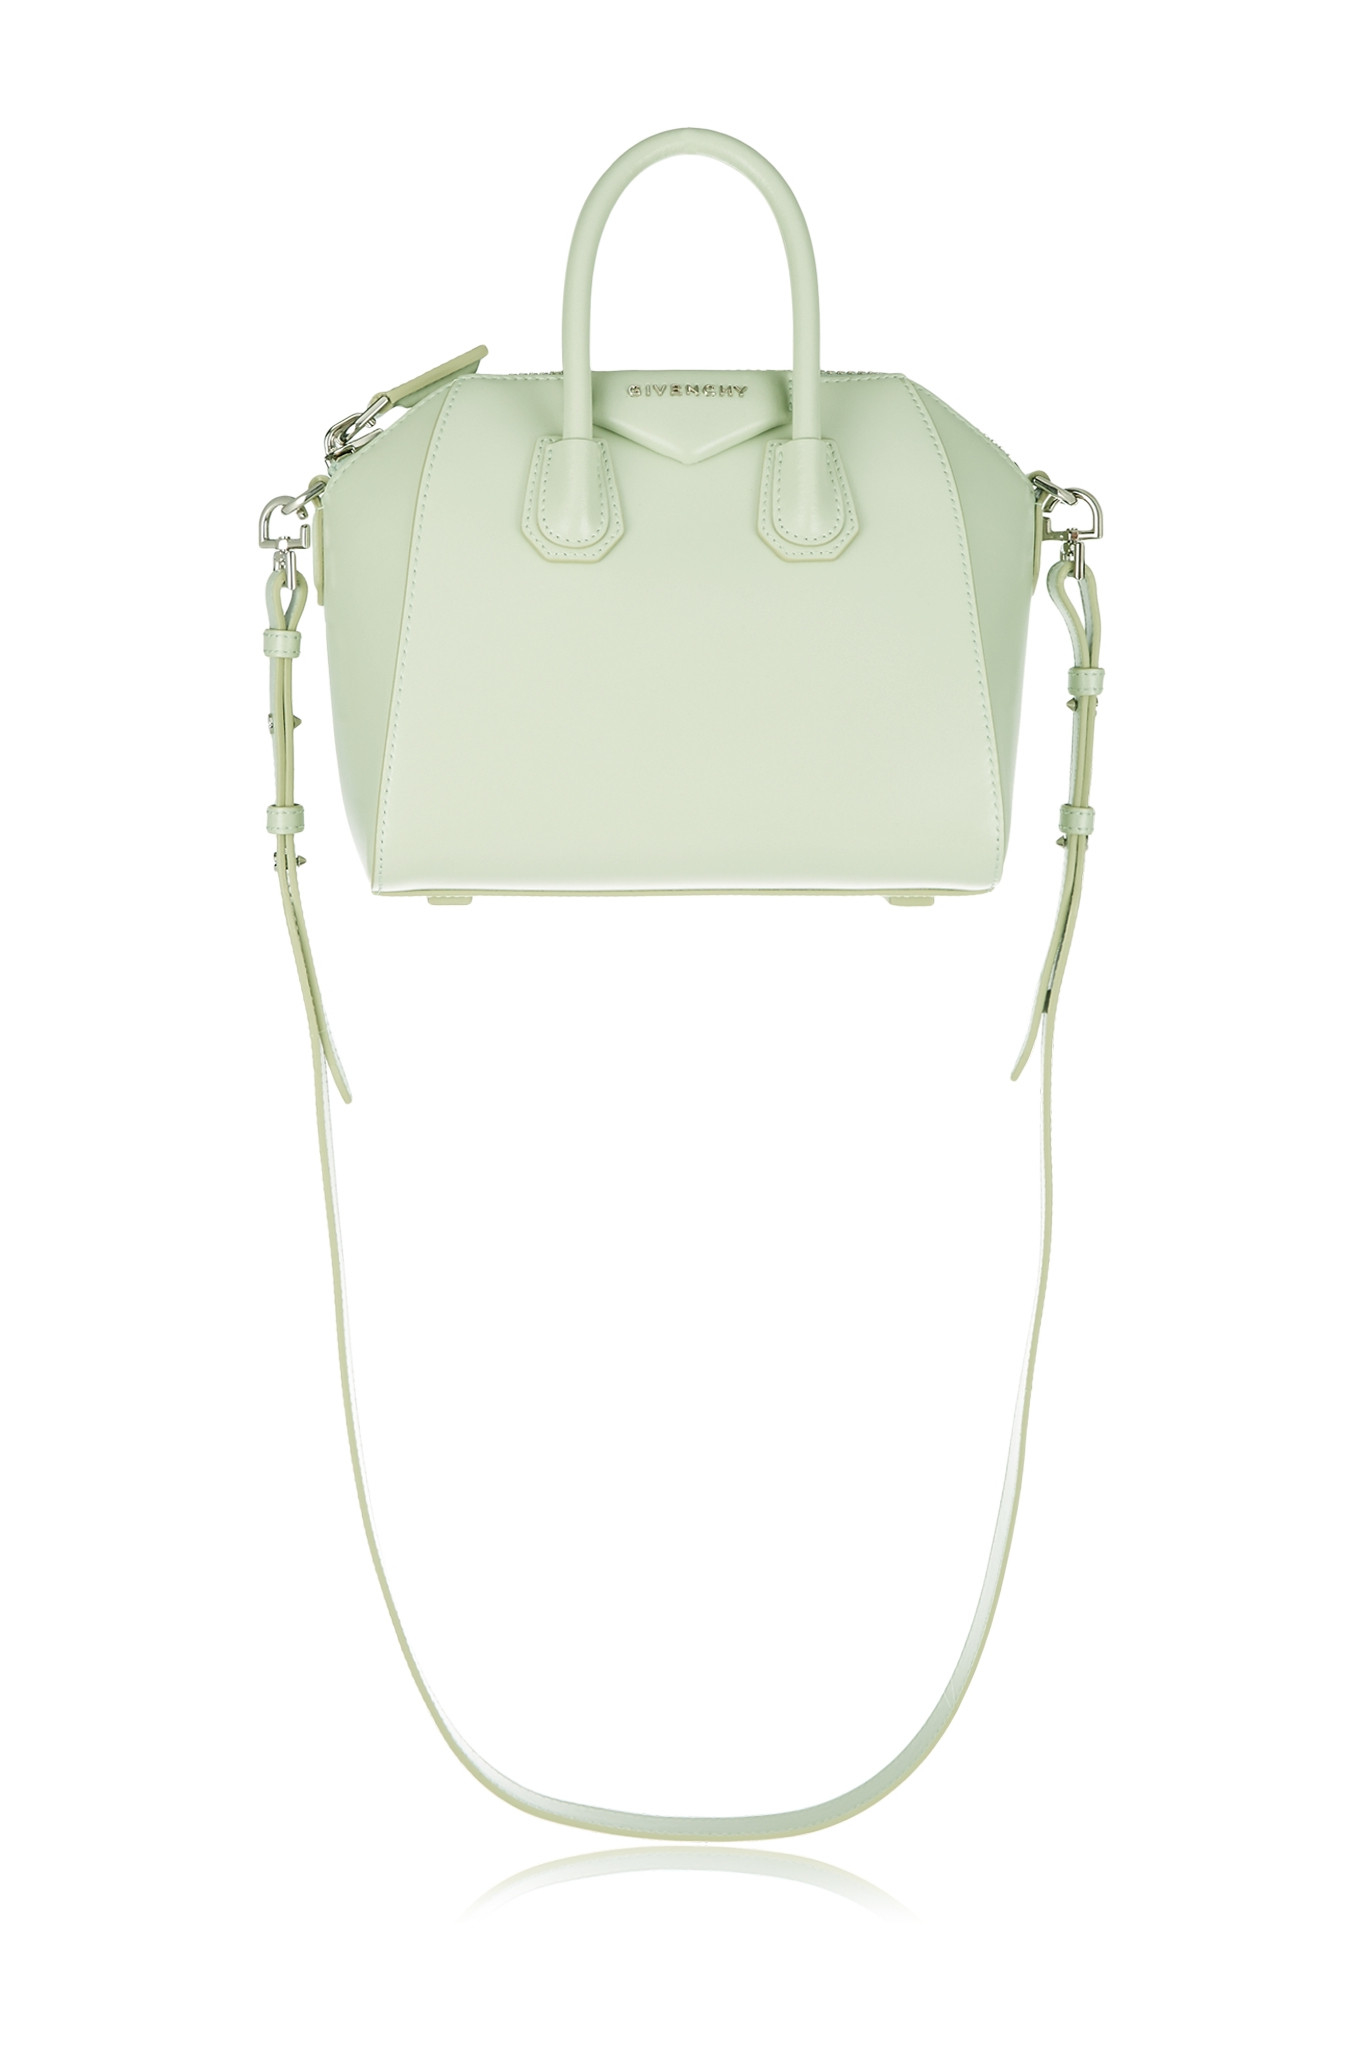 6fb2131bf13c Givenchy Mini Antigona Shoulder Bag In Mint Leather in Green - Lyst